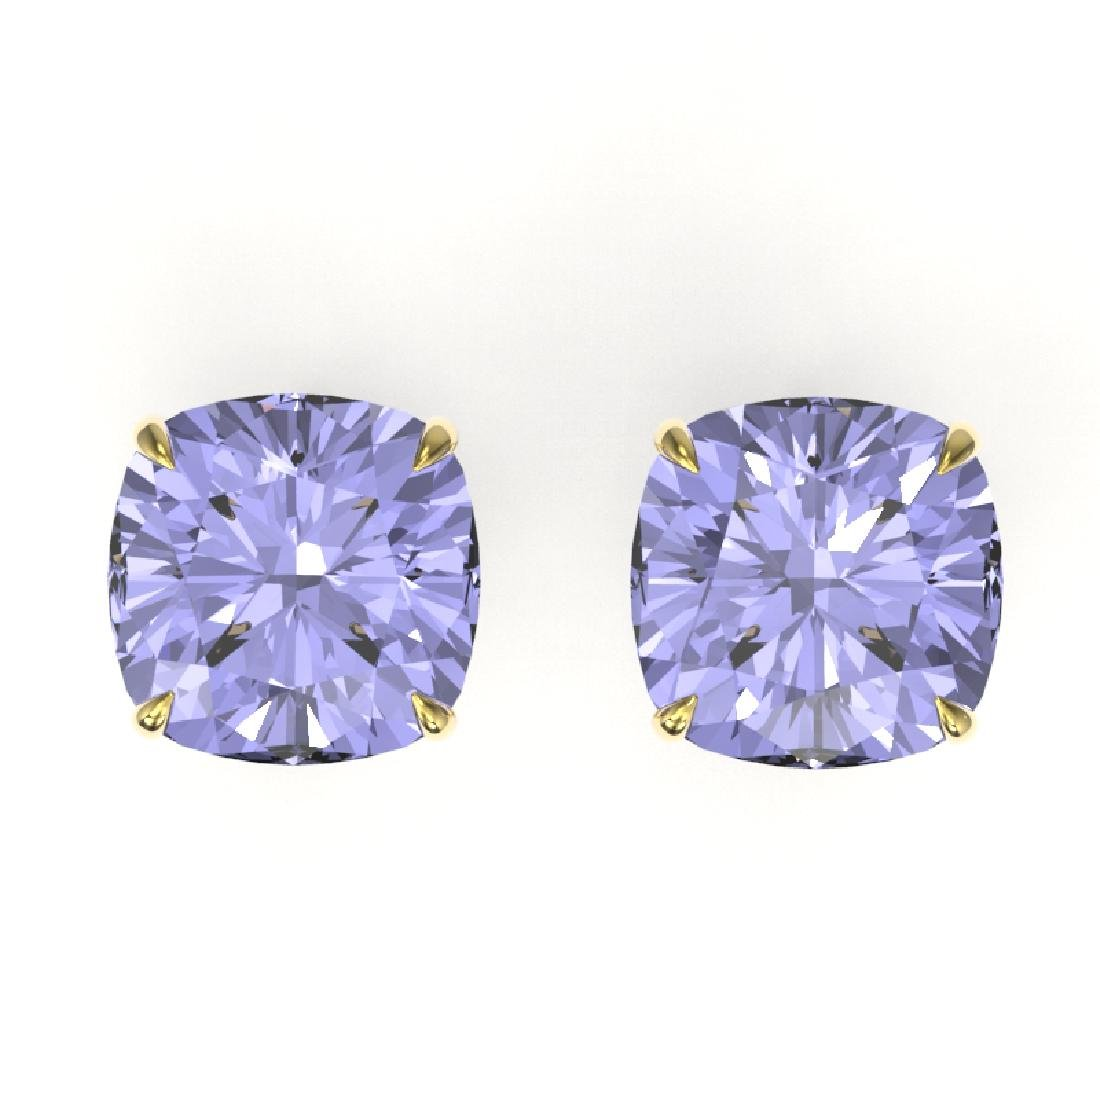 12 CTW Cushion Cut Tanzanite Designer Solitaire Stud